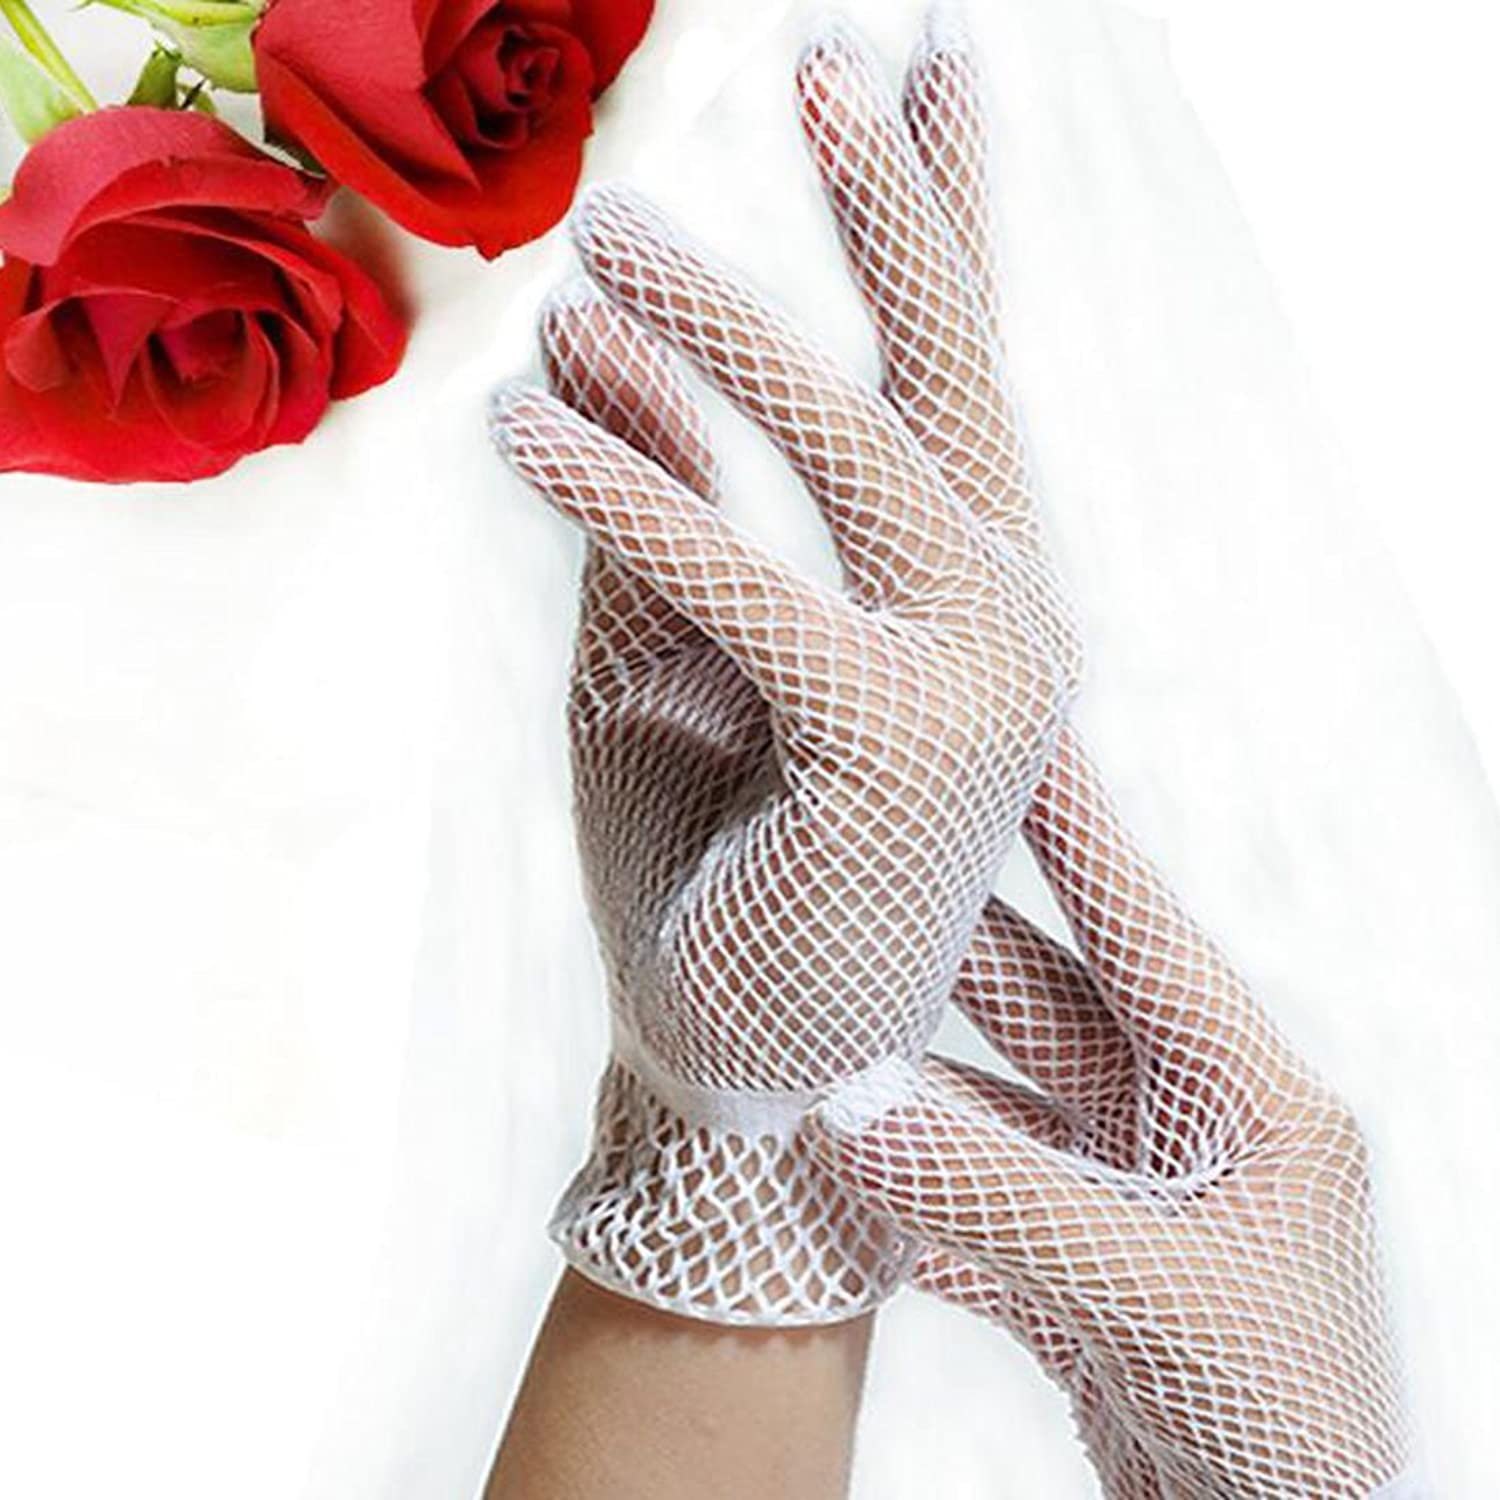 Vintage Gloves – Styles from 1900 to 1960s 1 Pair Fishnet Mesh Gloves Fashion Women Gloves Summer UV Protection Lace Glove White $2.11 AT vintagedancer.com